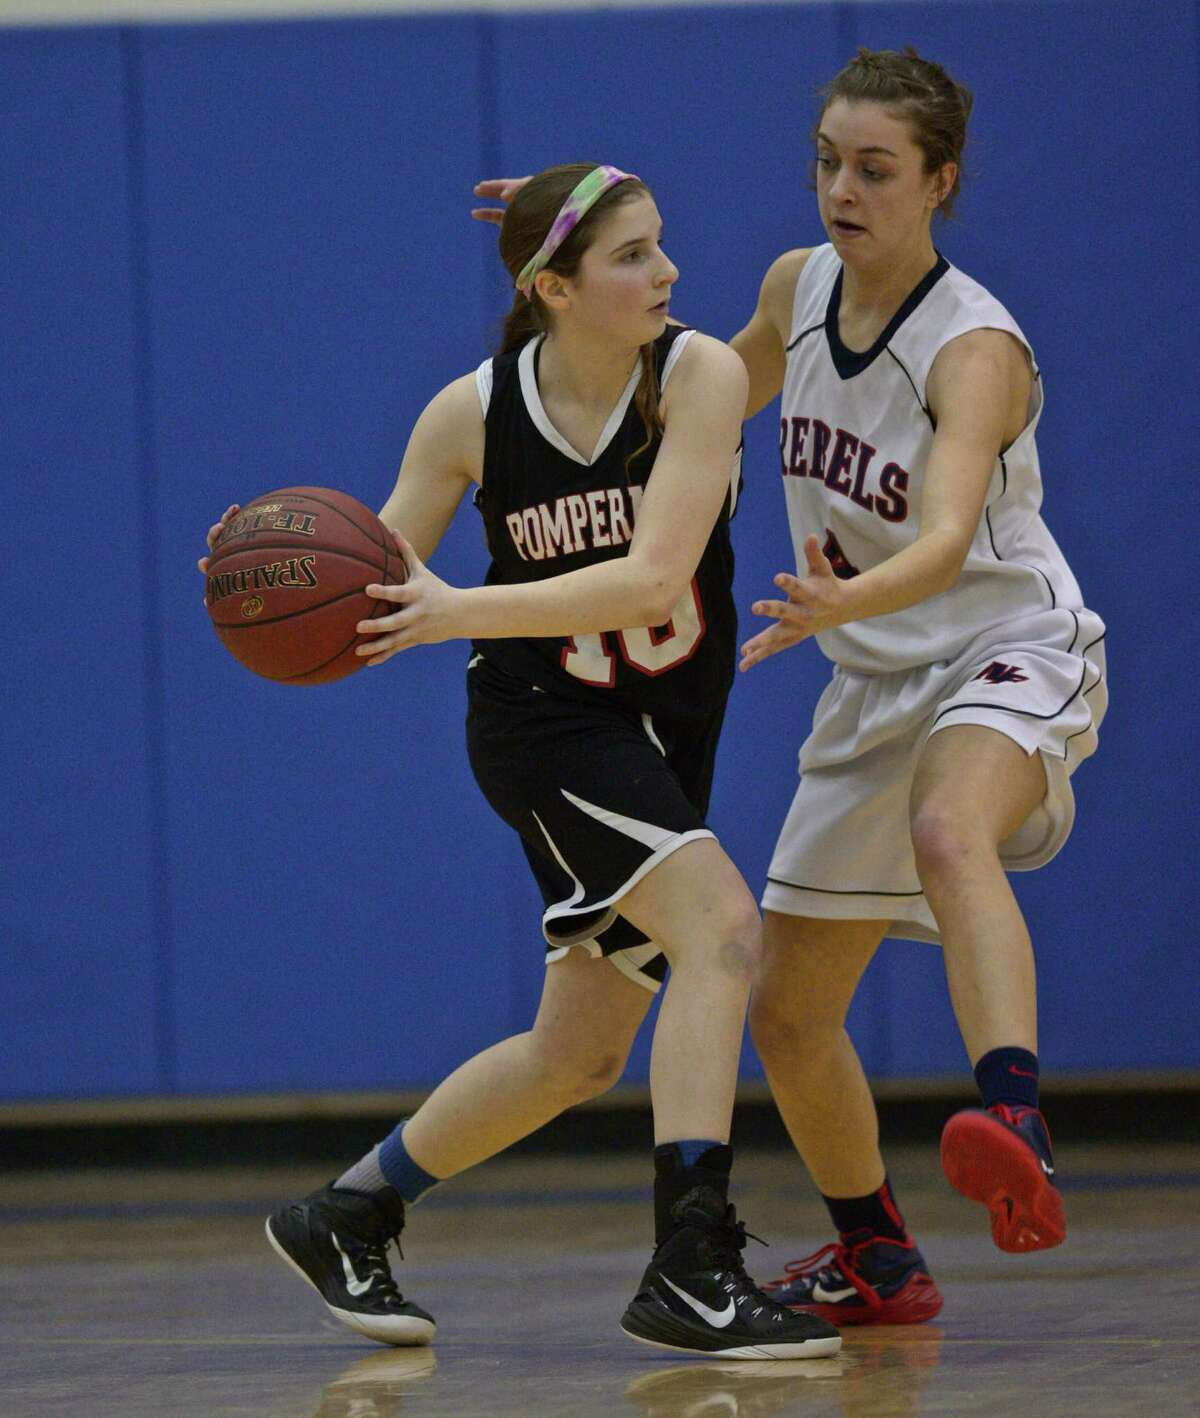 FILE PHOTO: New Fairfield's Bridget Zima (4) guards Pomperaug's Lauren Rubinstein (10) during the SWC Girls Basketball Championship Semifinal game between Pomperaug and New Fairfield high schools, played at Newtown High School, Newtown, Conn, on Tuesday, February 24, 2015.